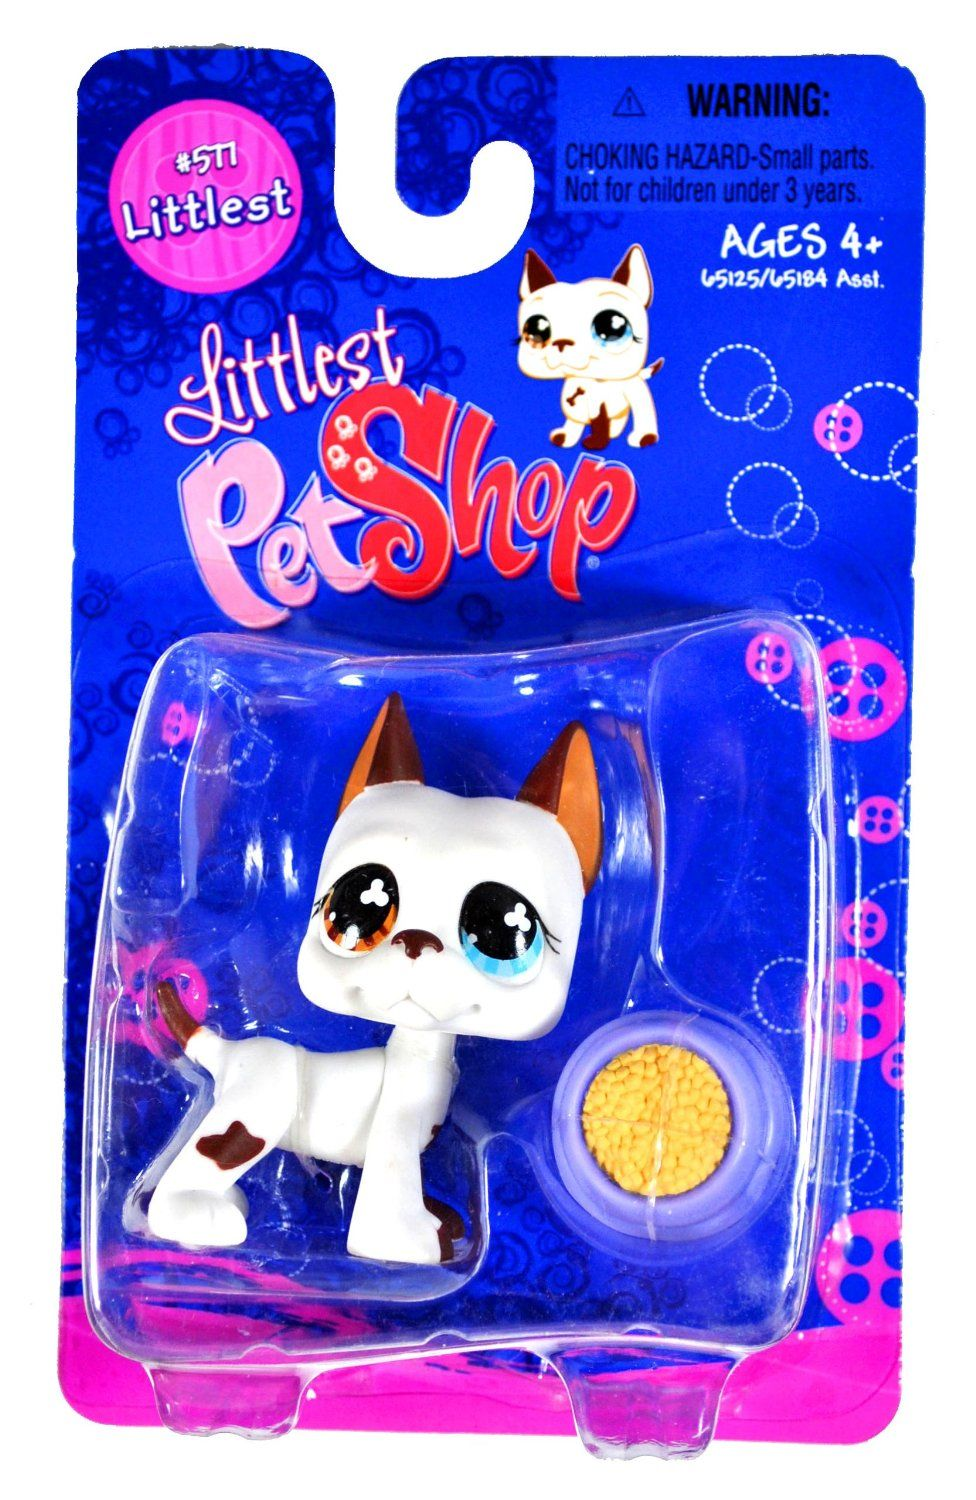 Robot Check Lps Toys Little Pets Lps Littlest Pet Shop